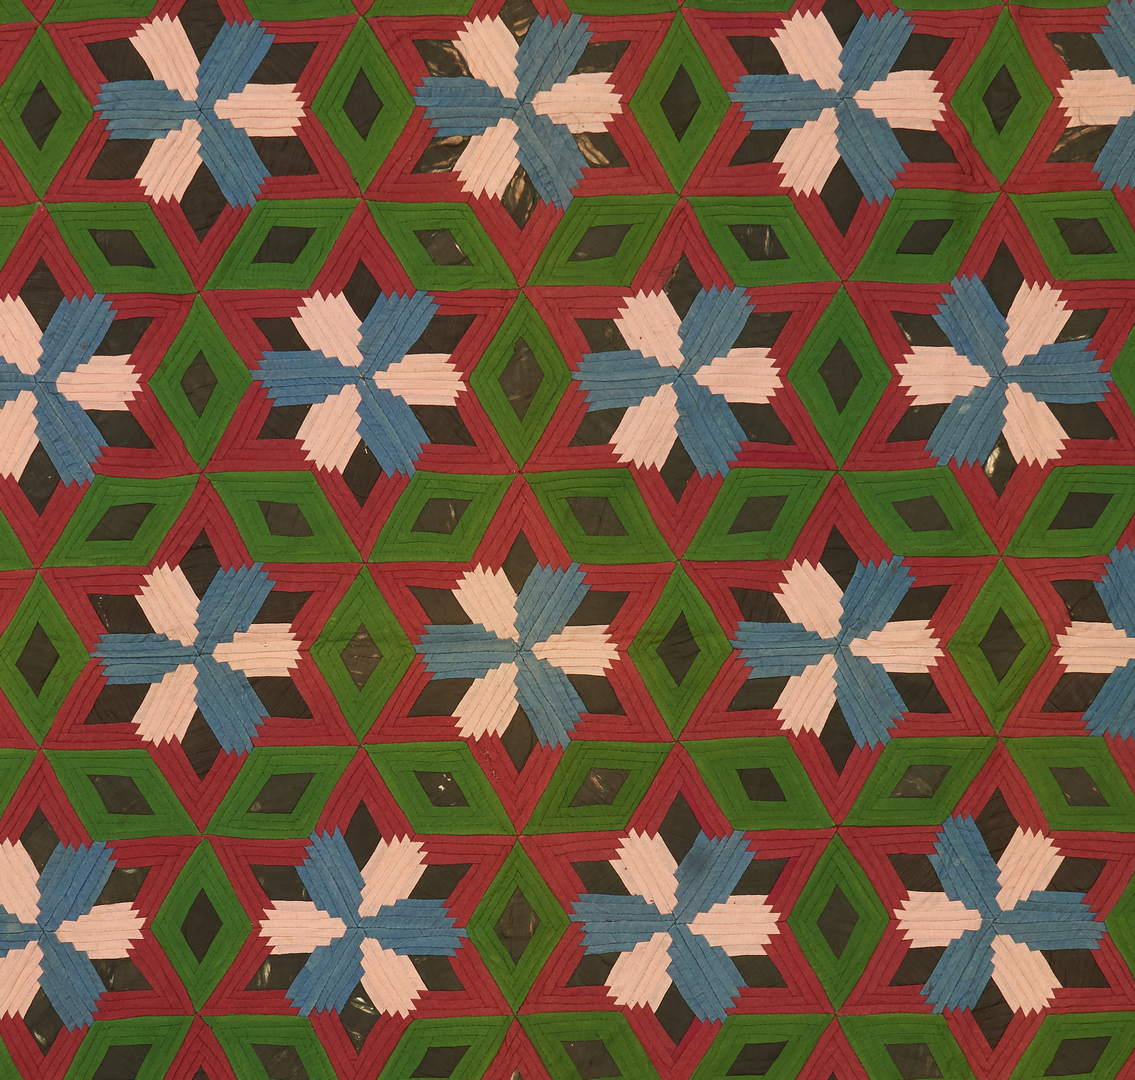 Lot 865: American Wool & Cotton Quilt, Pineapple variant